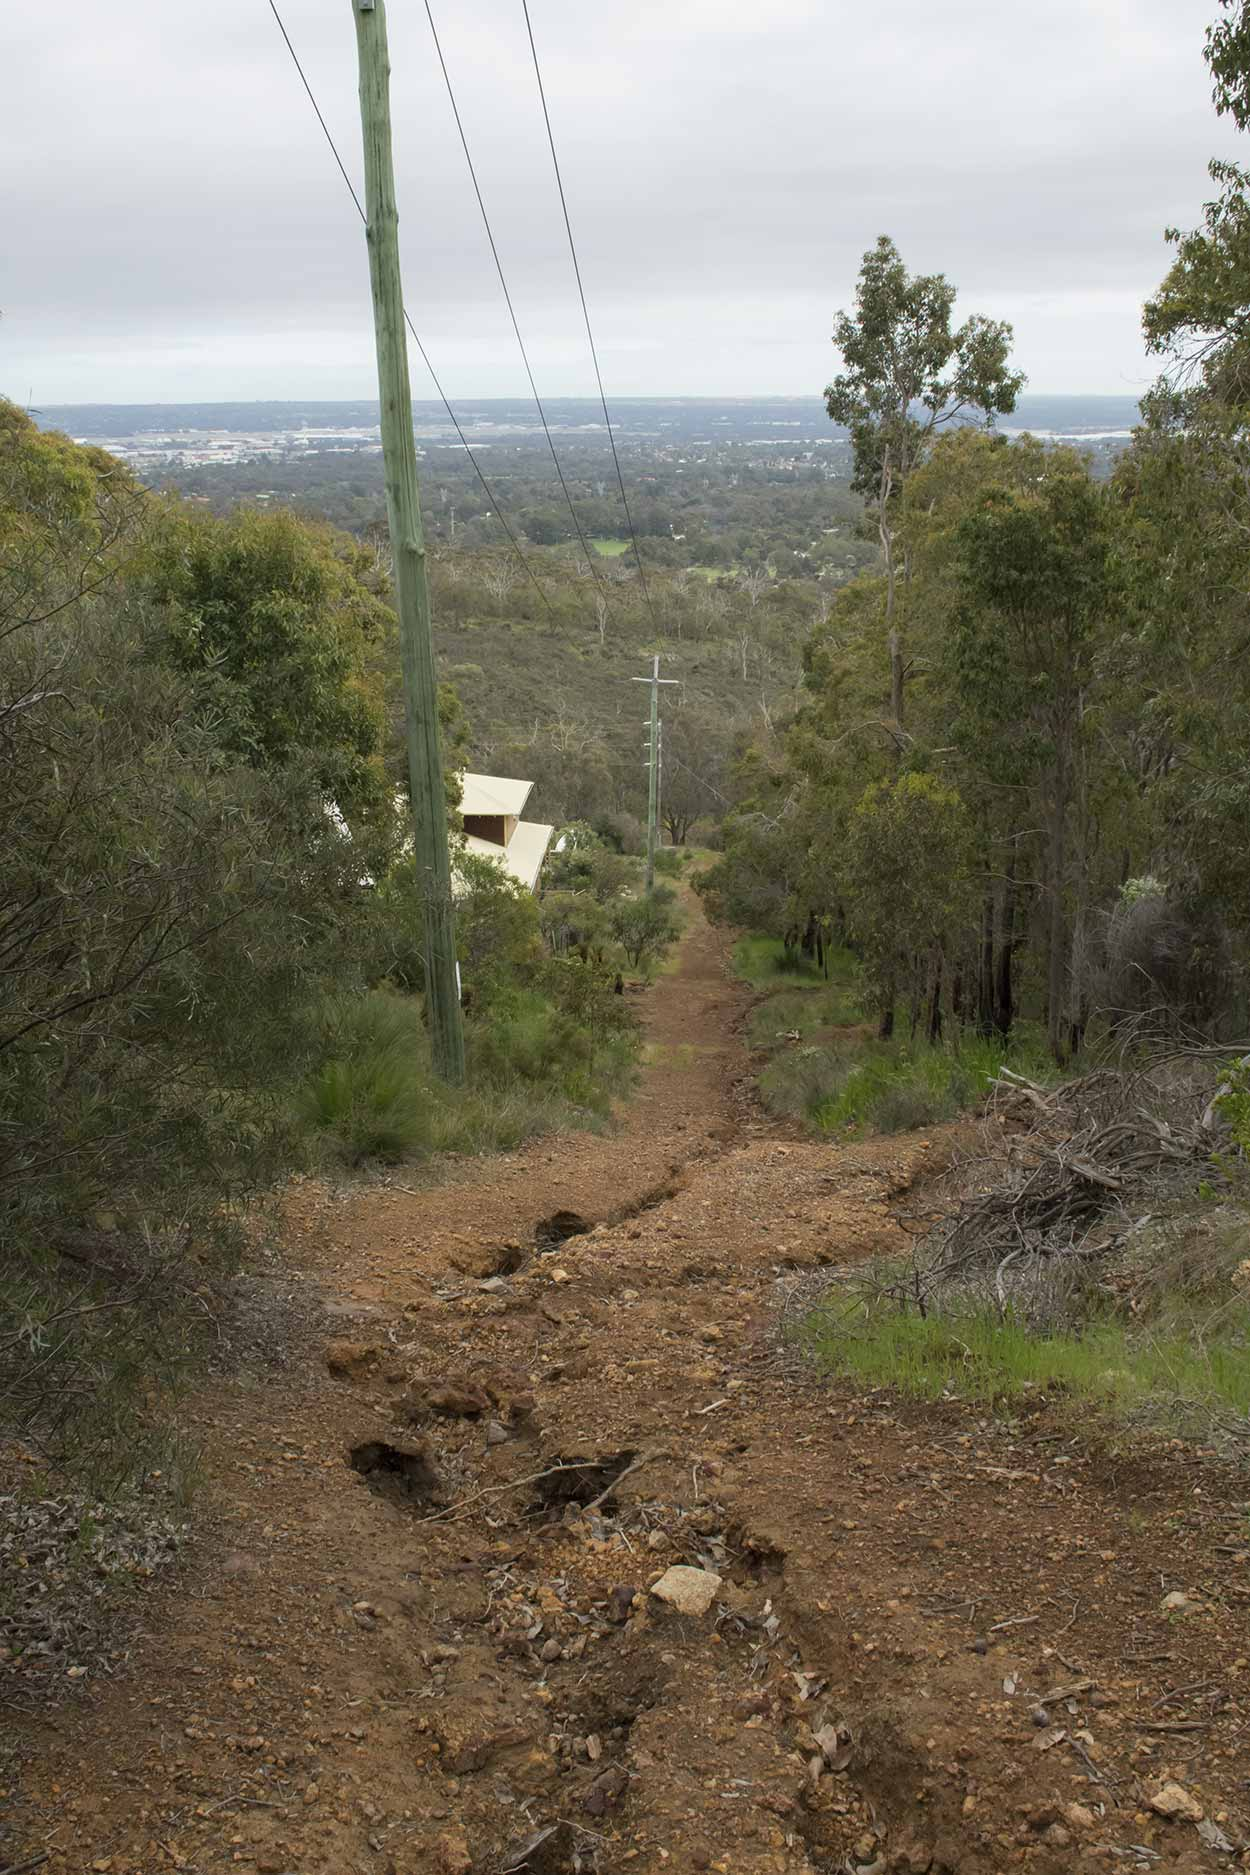 A steep section of the West Terrace Walk, Mundy Regional Park, Perth, Western Australia